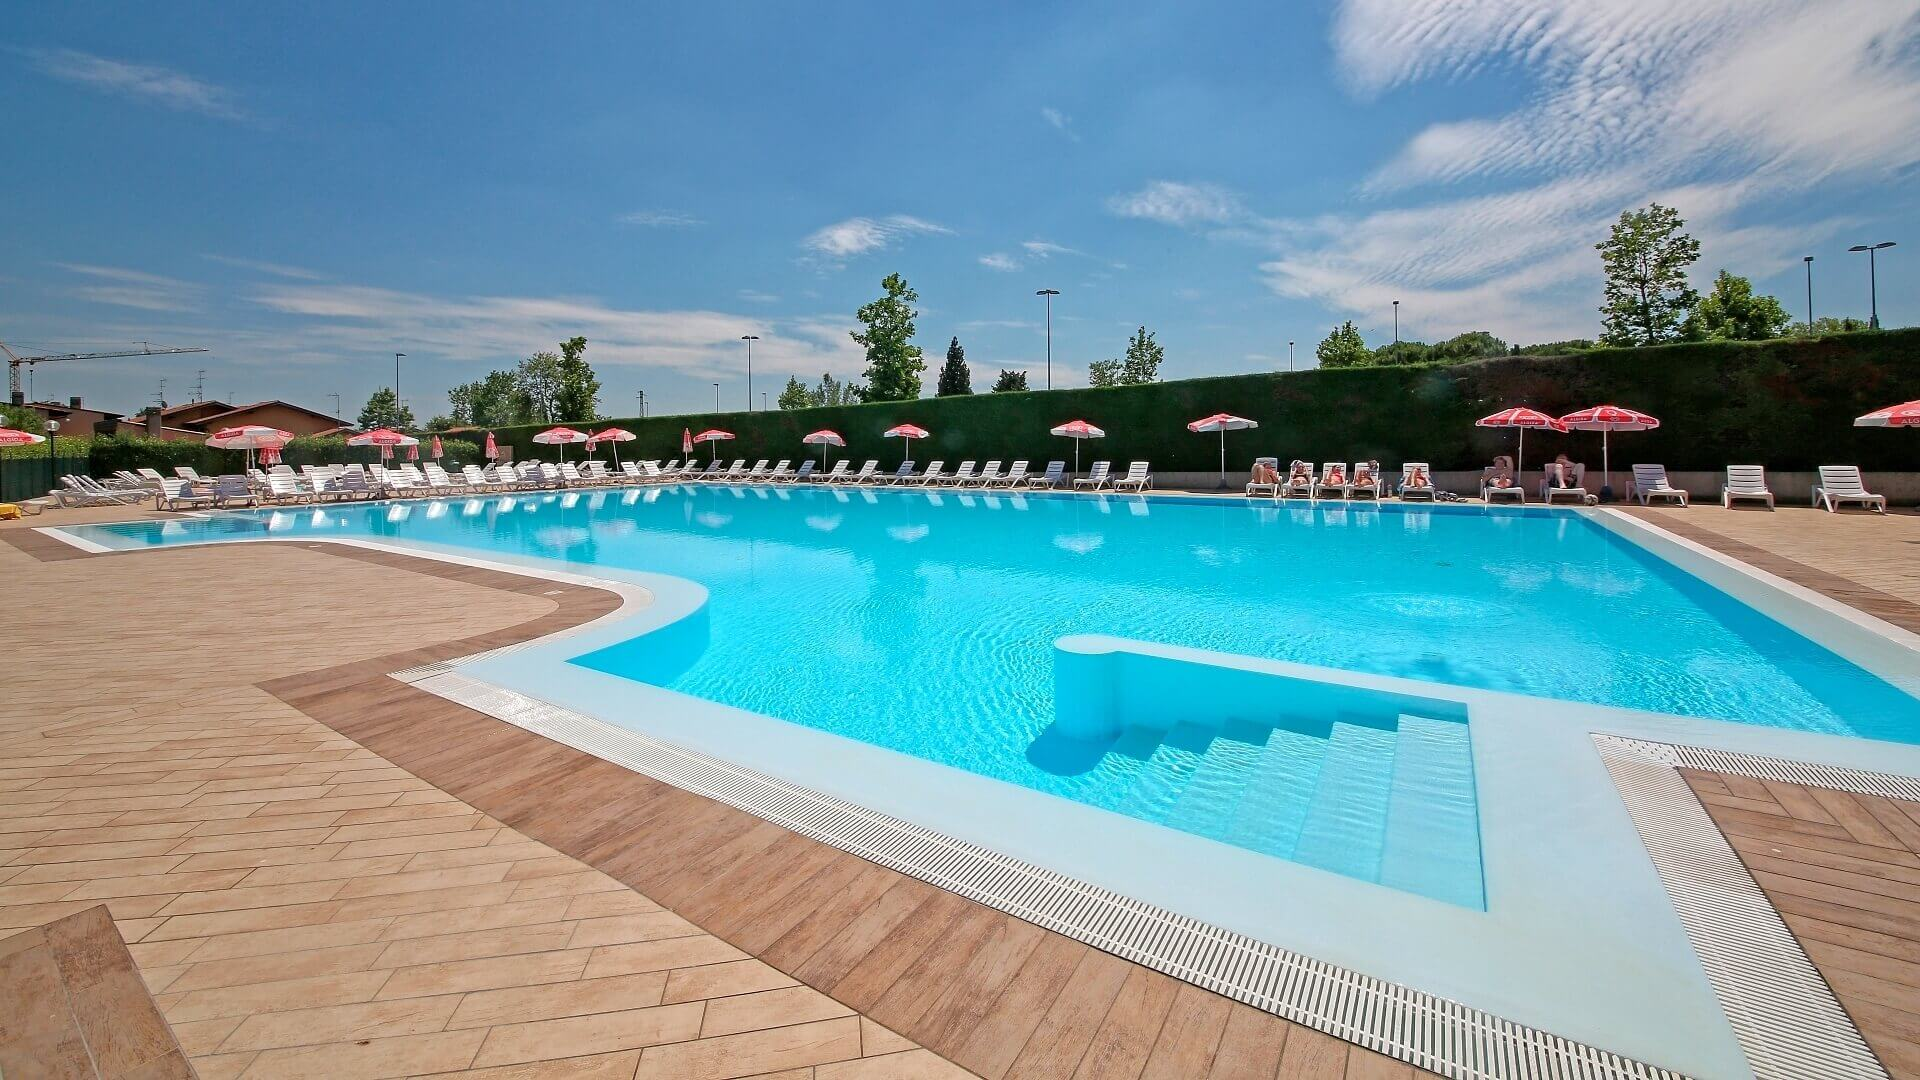 Ferienwohnung Gardasee Mit Pool Sirmione Apartments Complex And Camping In Sirmione On Lake Garda